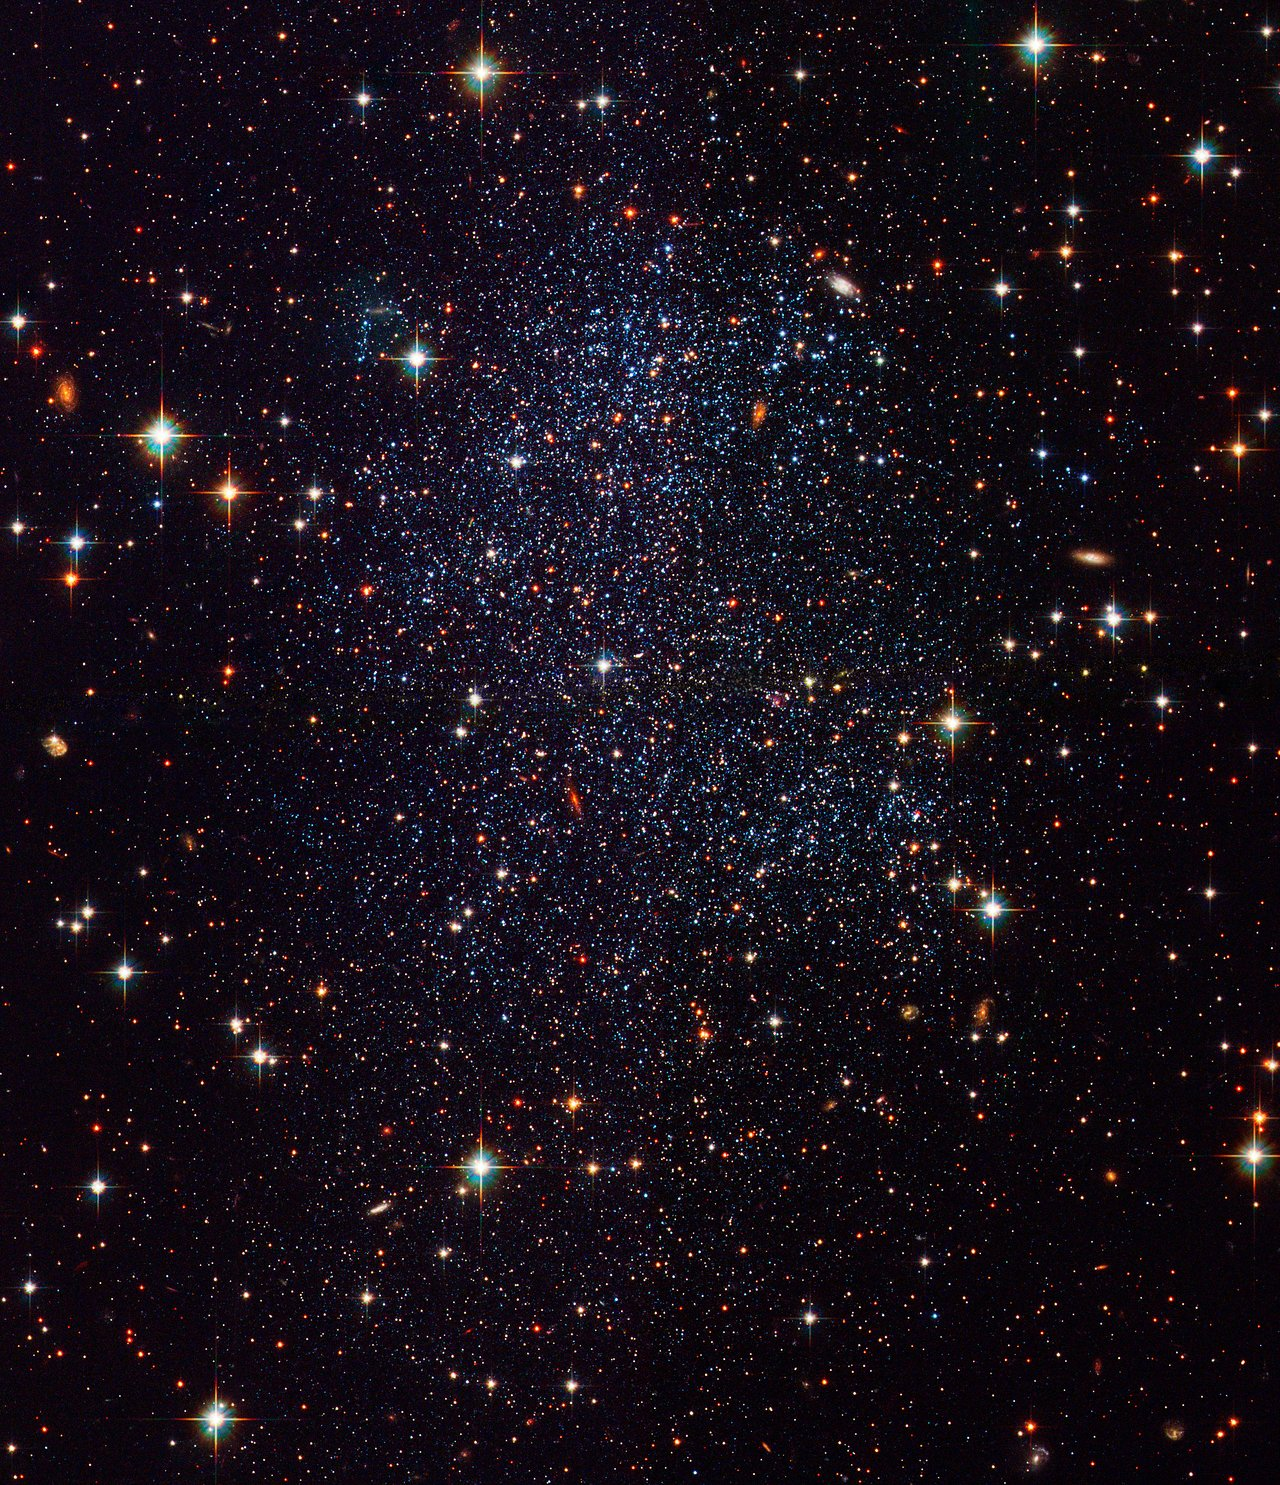 Hubble Images Sagittarius Dwarf Galaxy